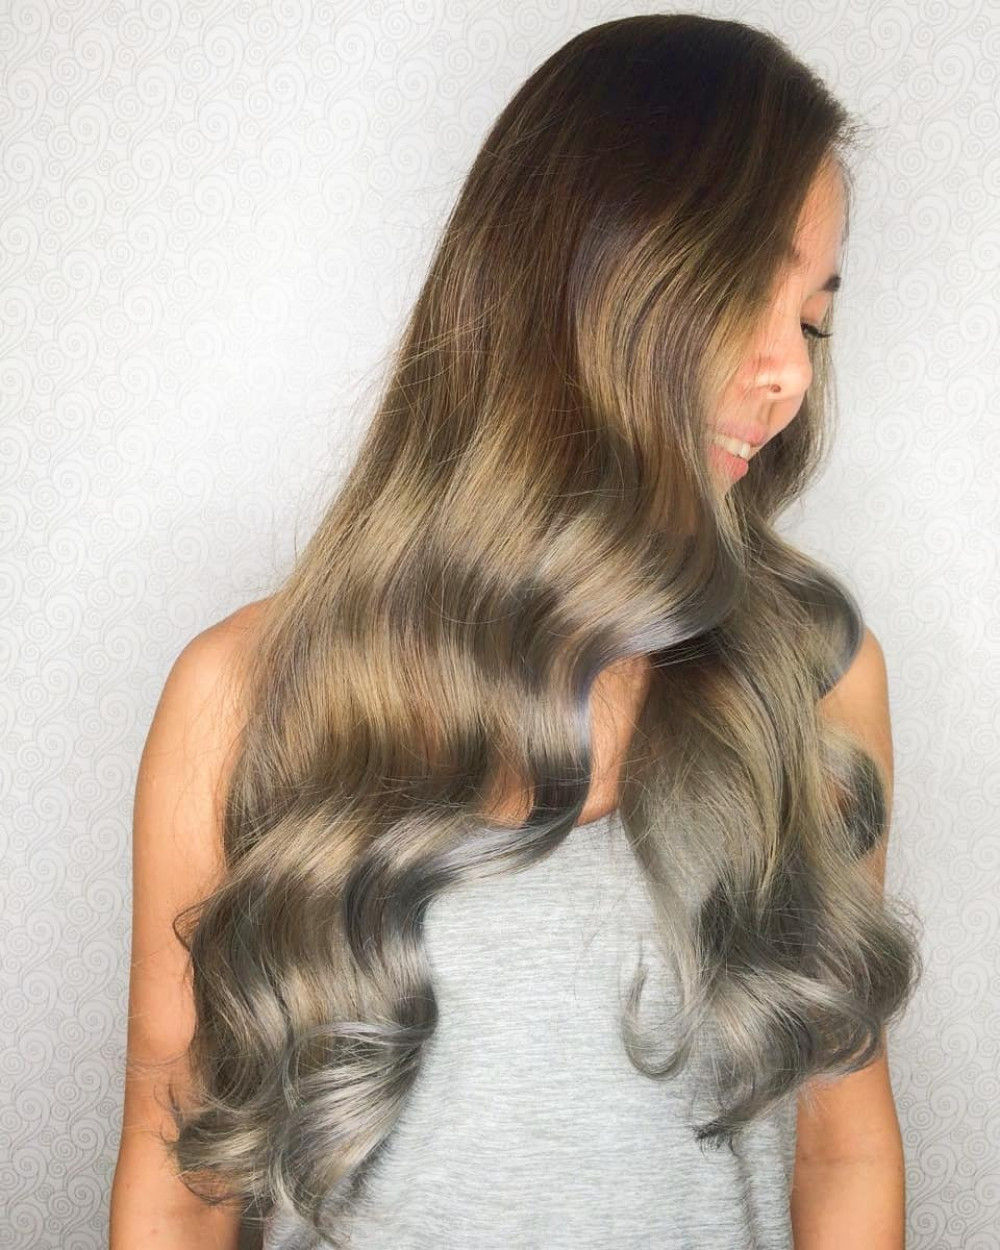 Golden Brown Hair with Silver Highlights